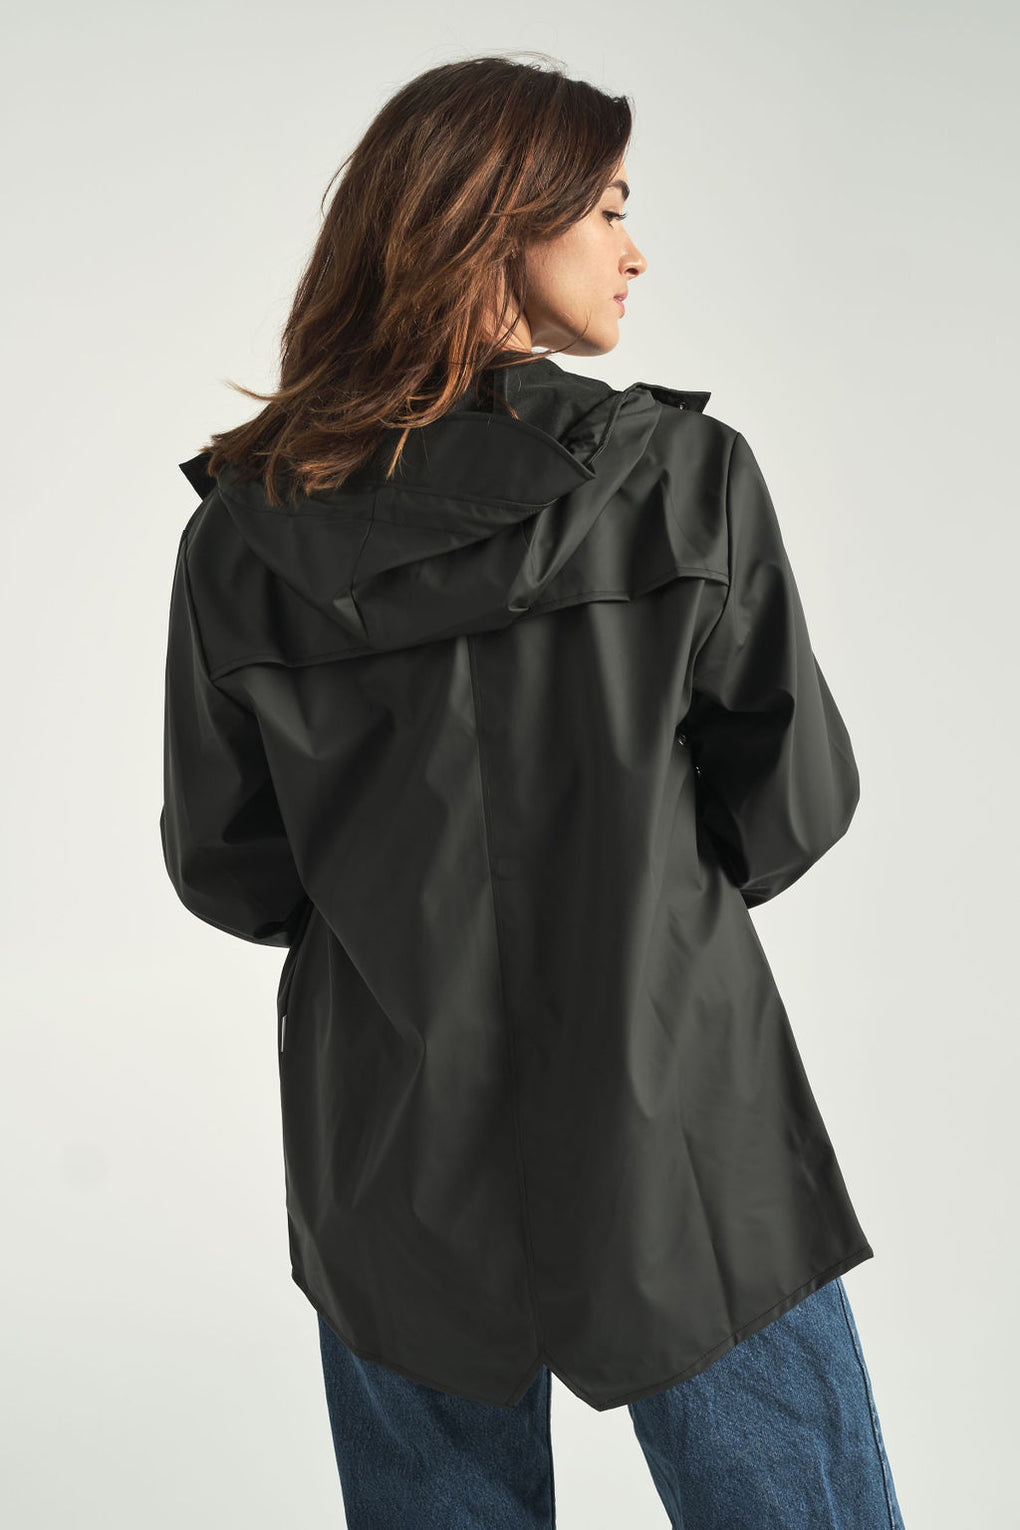 Rains-rain jacket-black rain jacket-Idun-St. Paul